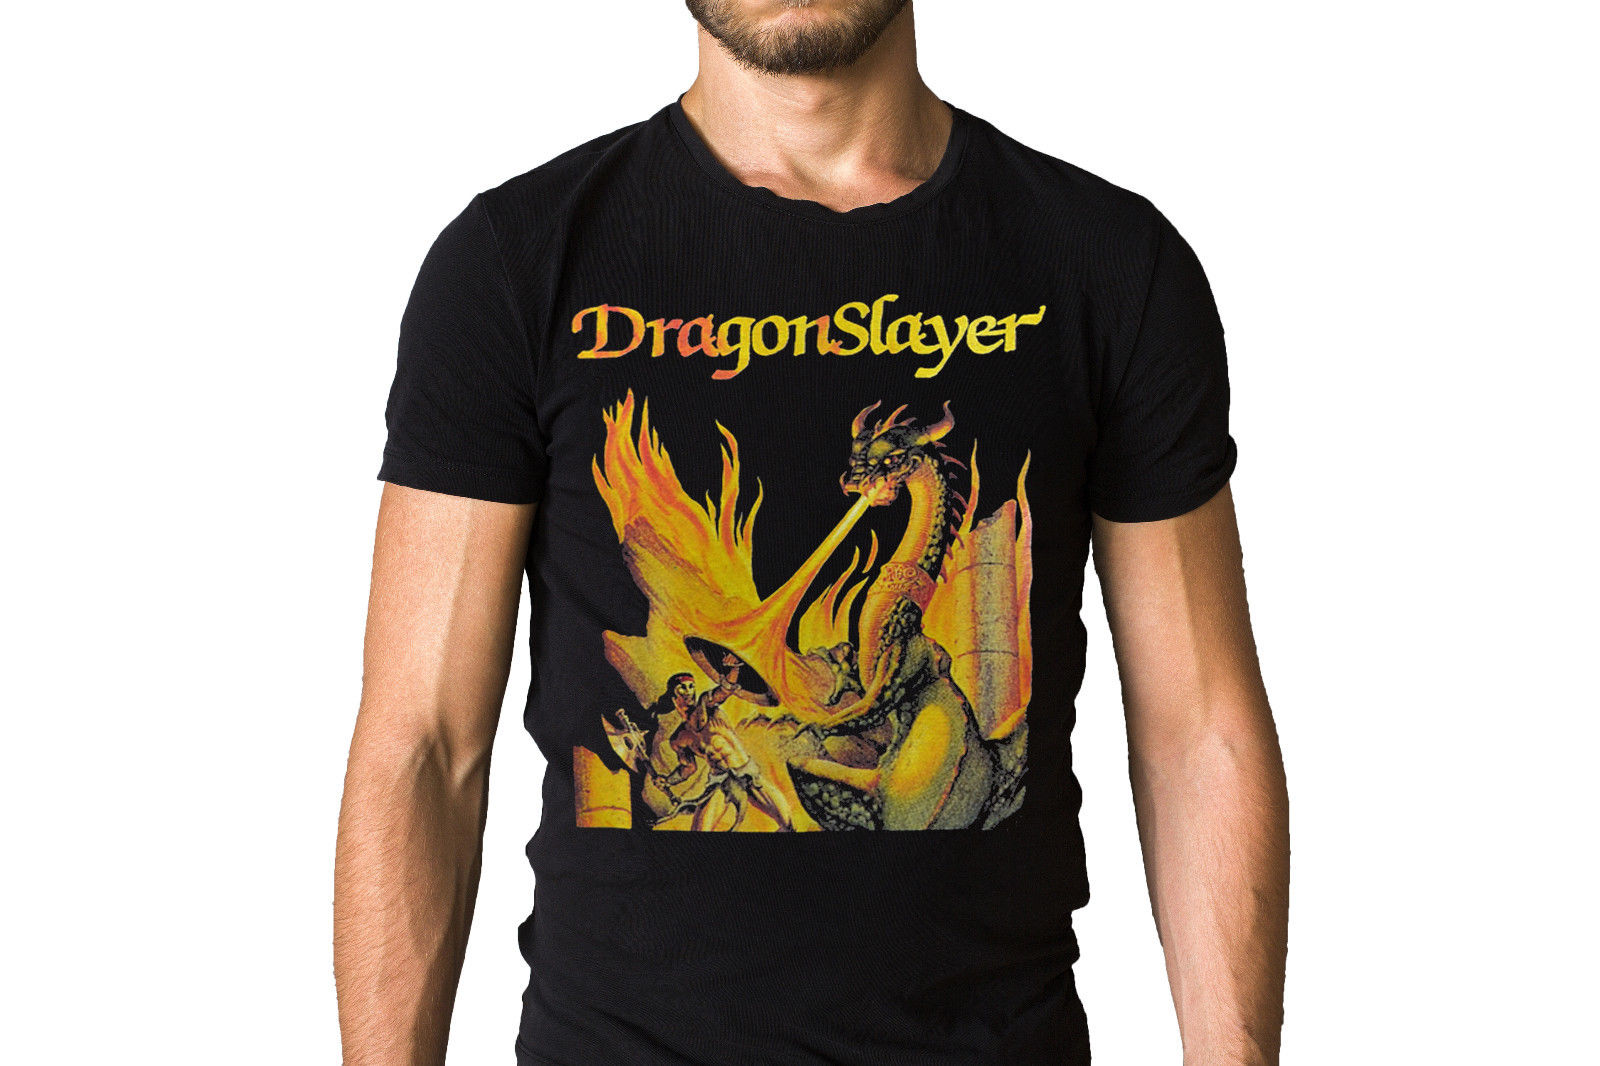 Dragonslayer Dragon Slayer Album Cover T-Shirt New Tops 2018 Print Letters Men T Shirt Fashion Classic Top Tee Plus Size image